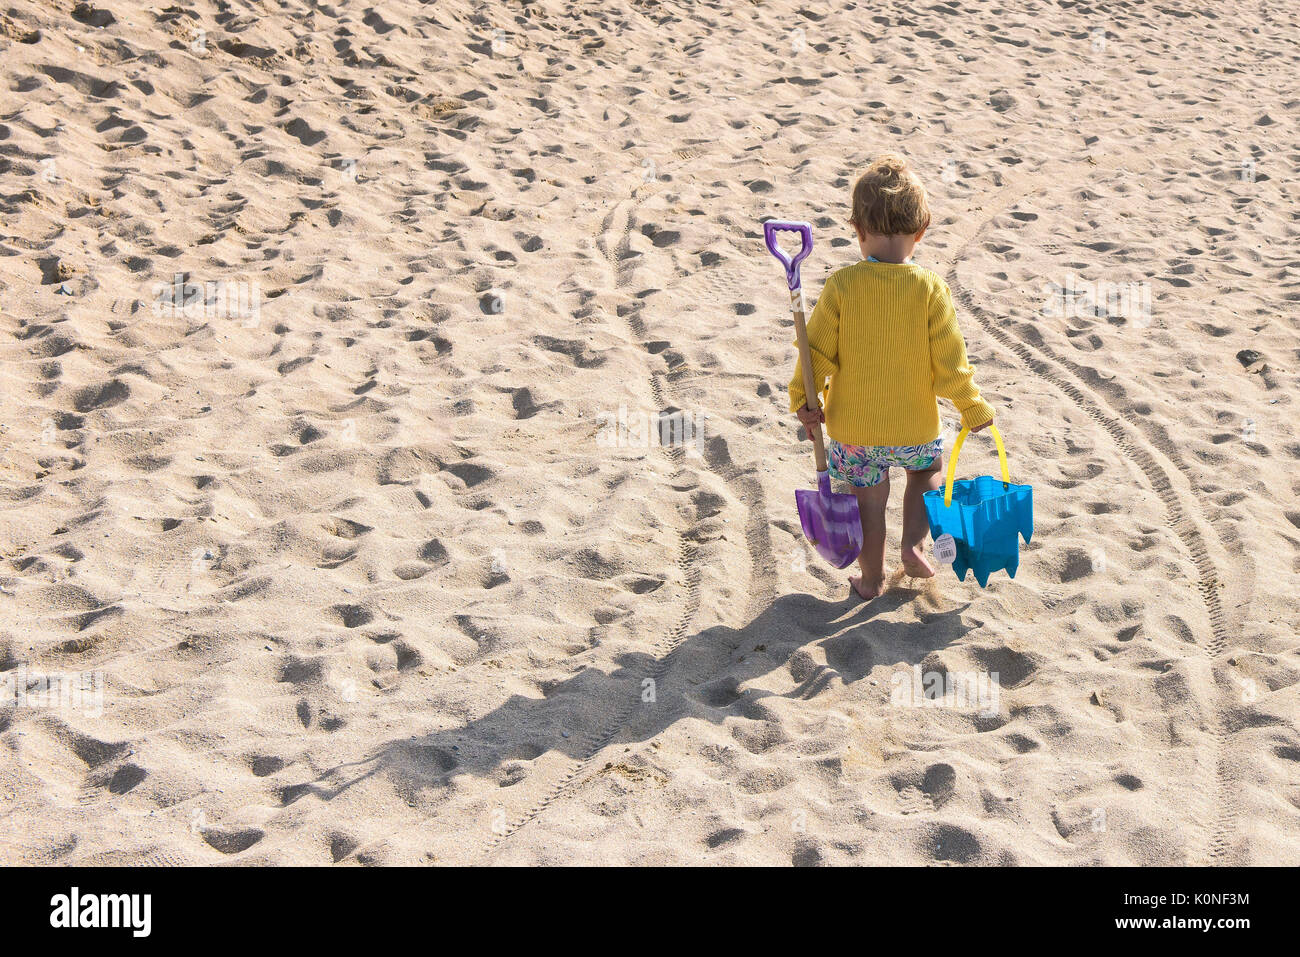 A toddler carrying her bucket and spade walking off to play on the beach. - Stock Image